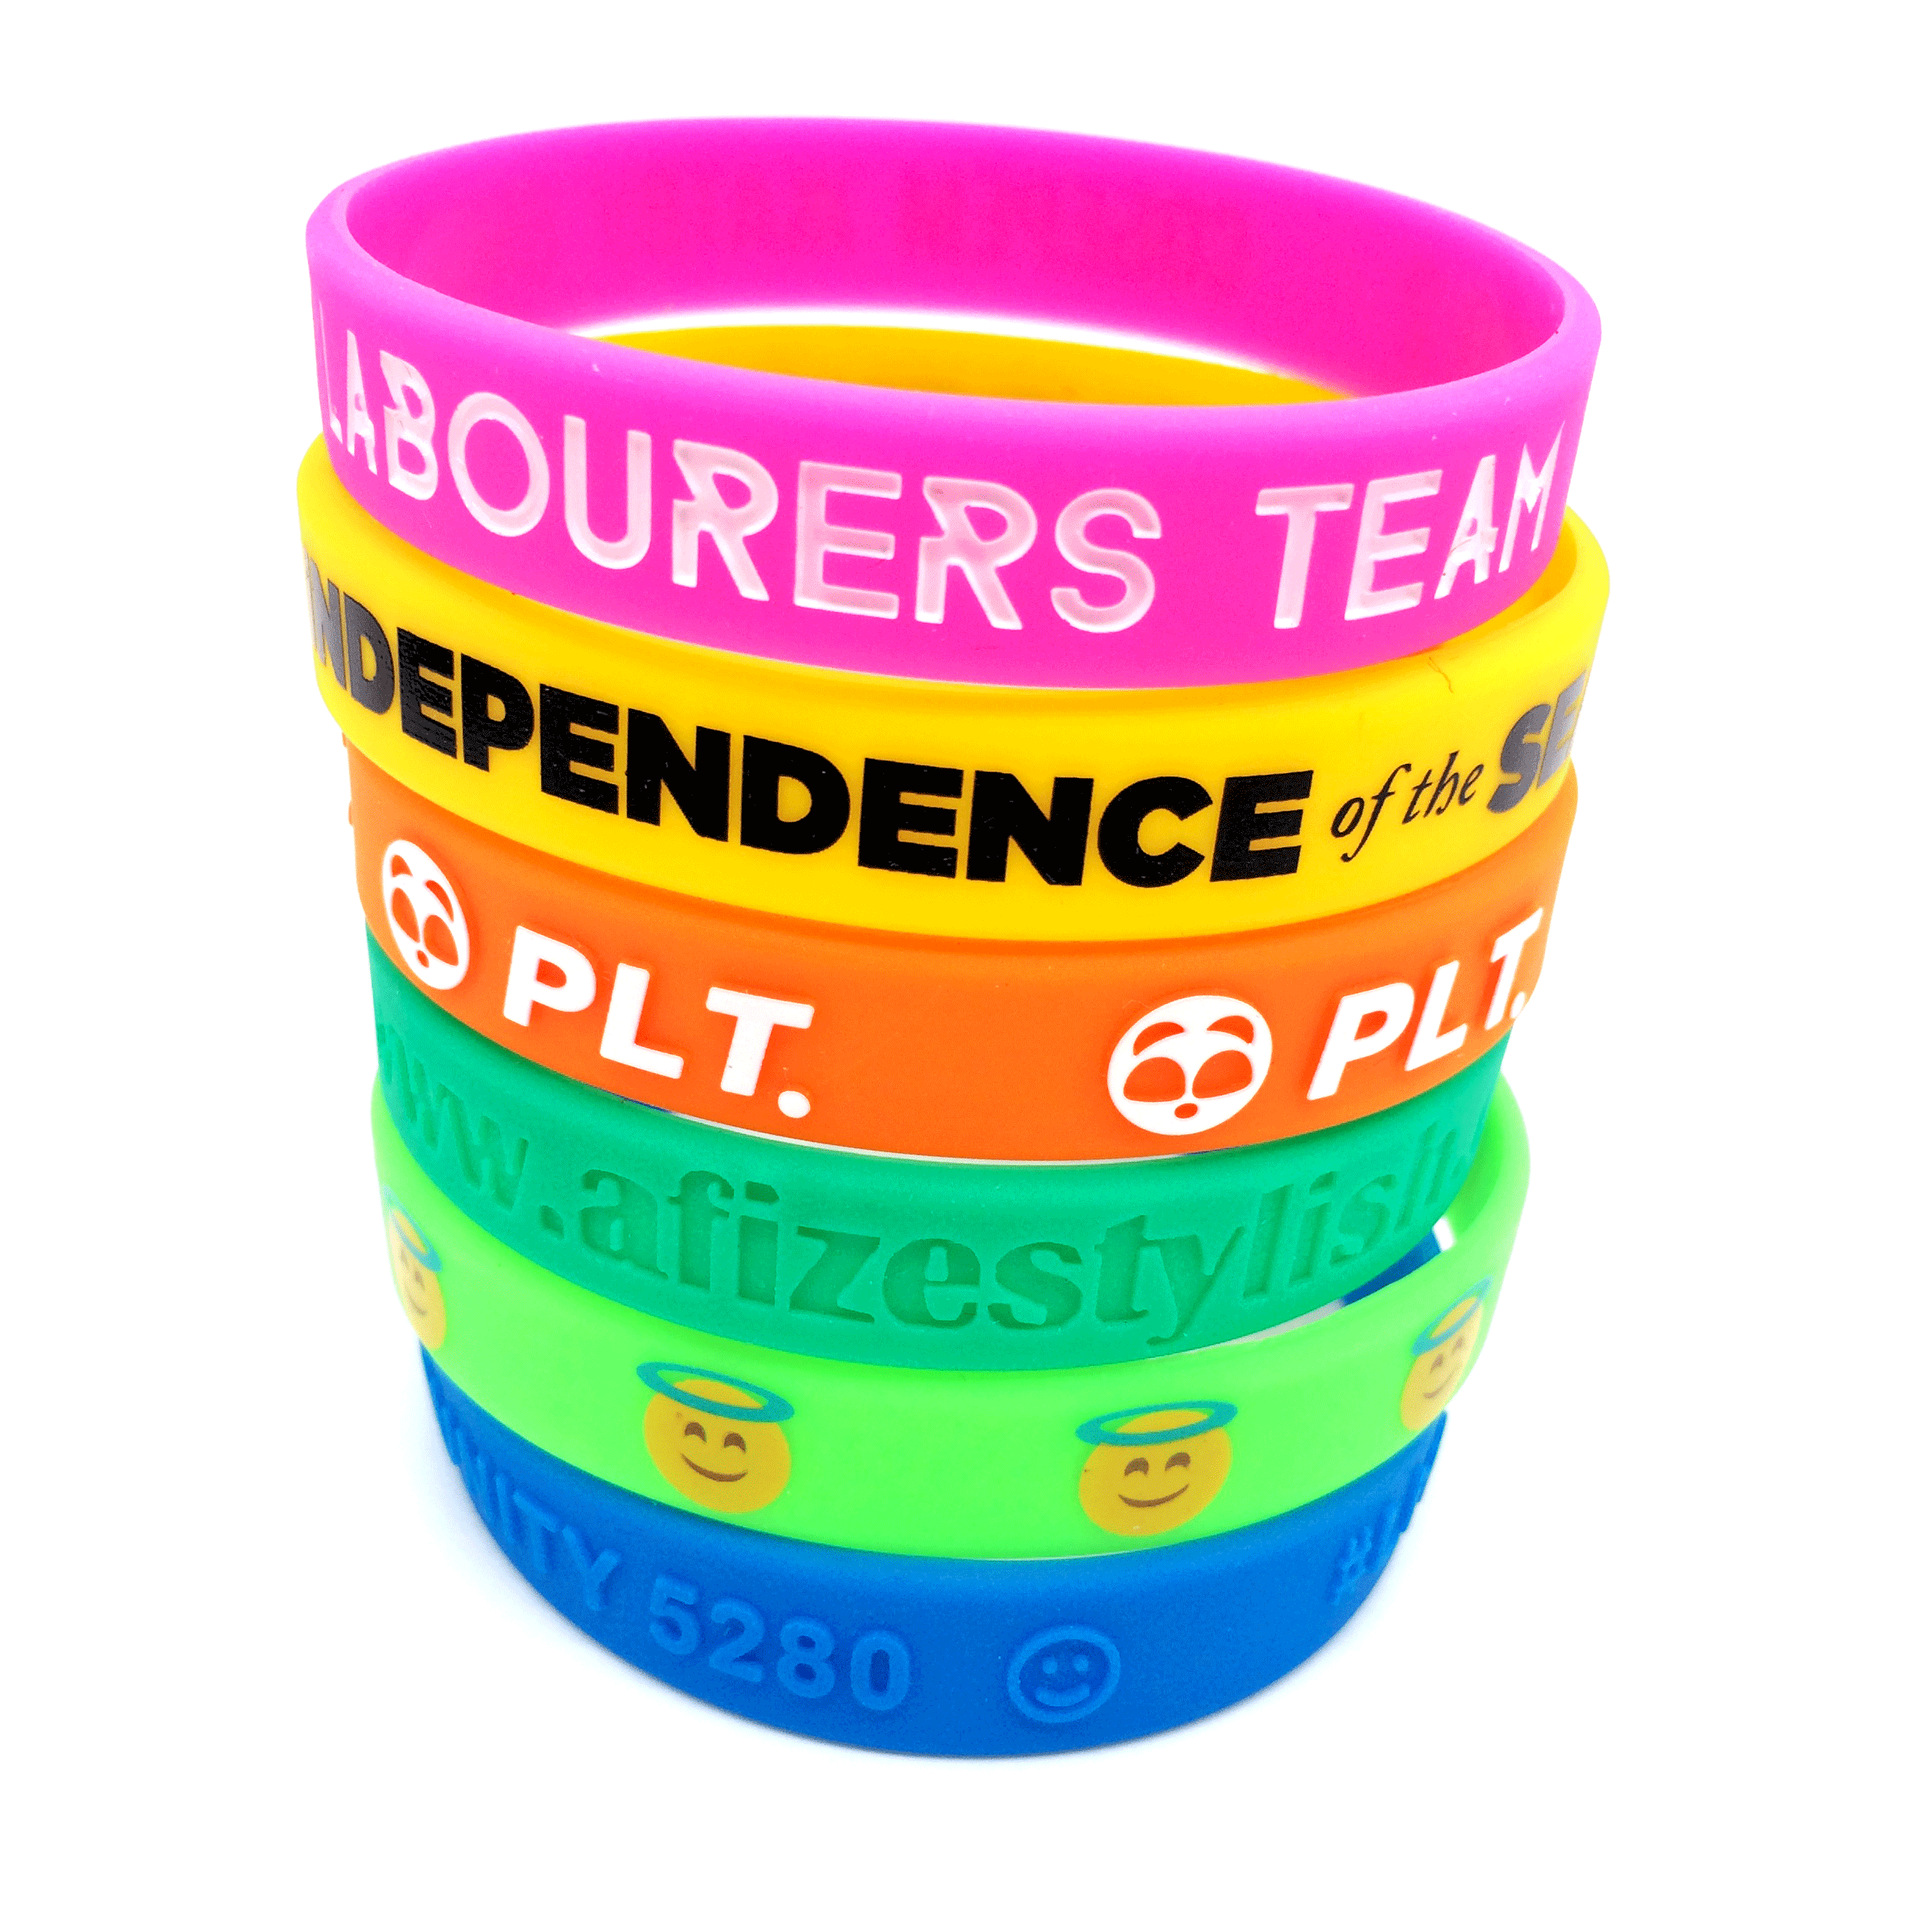 Personalized Silicone Wristbands/ Bracelets